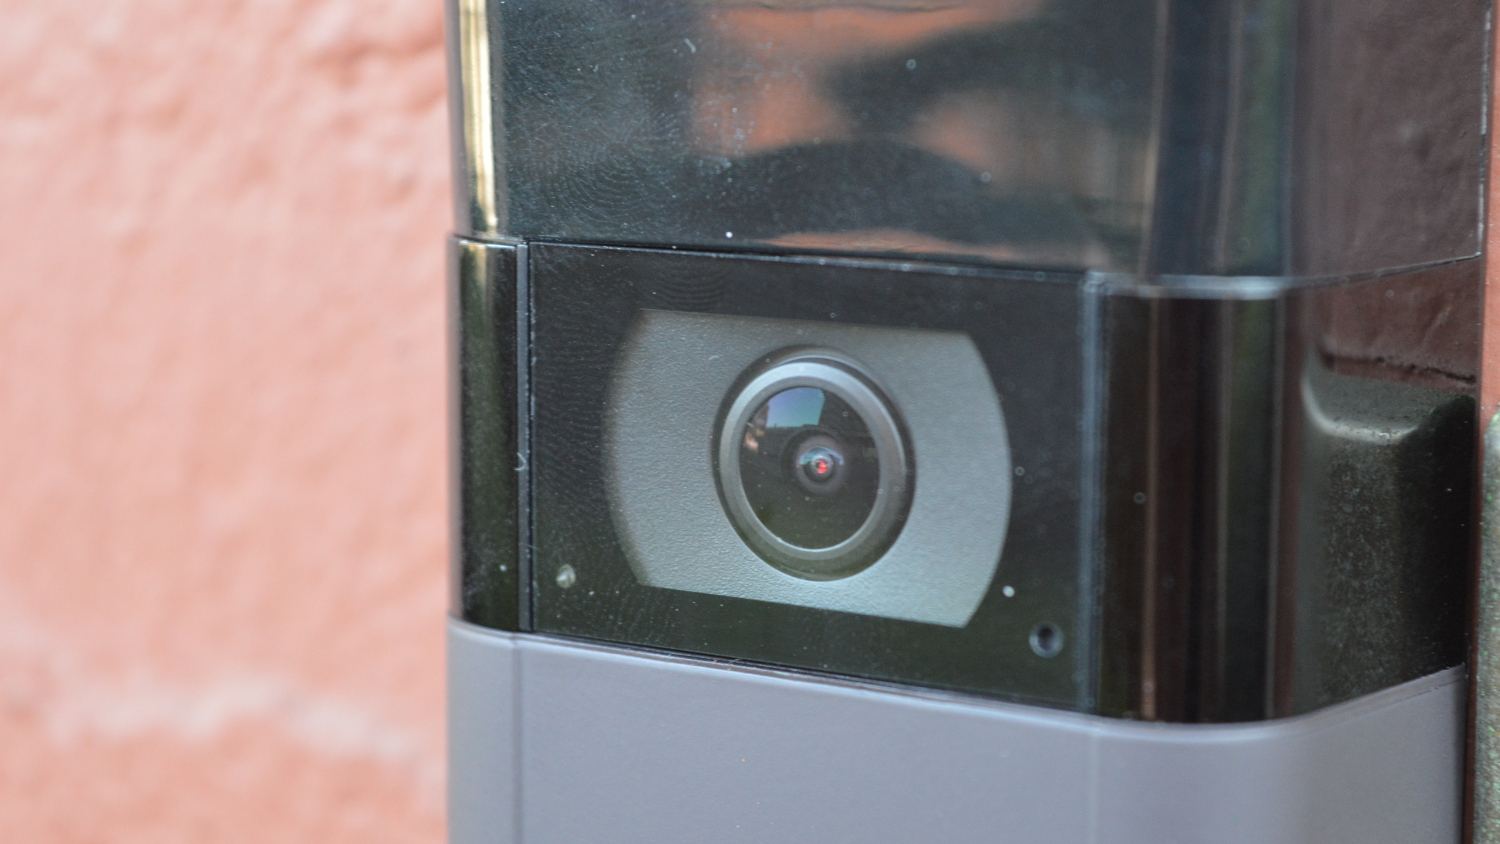 Ring video doorbell 2 lens close up